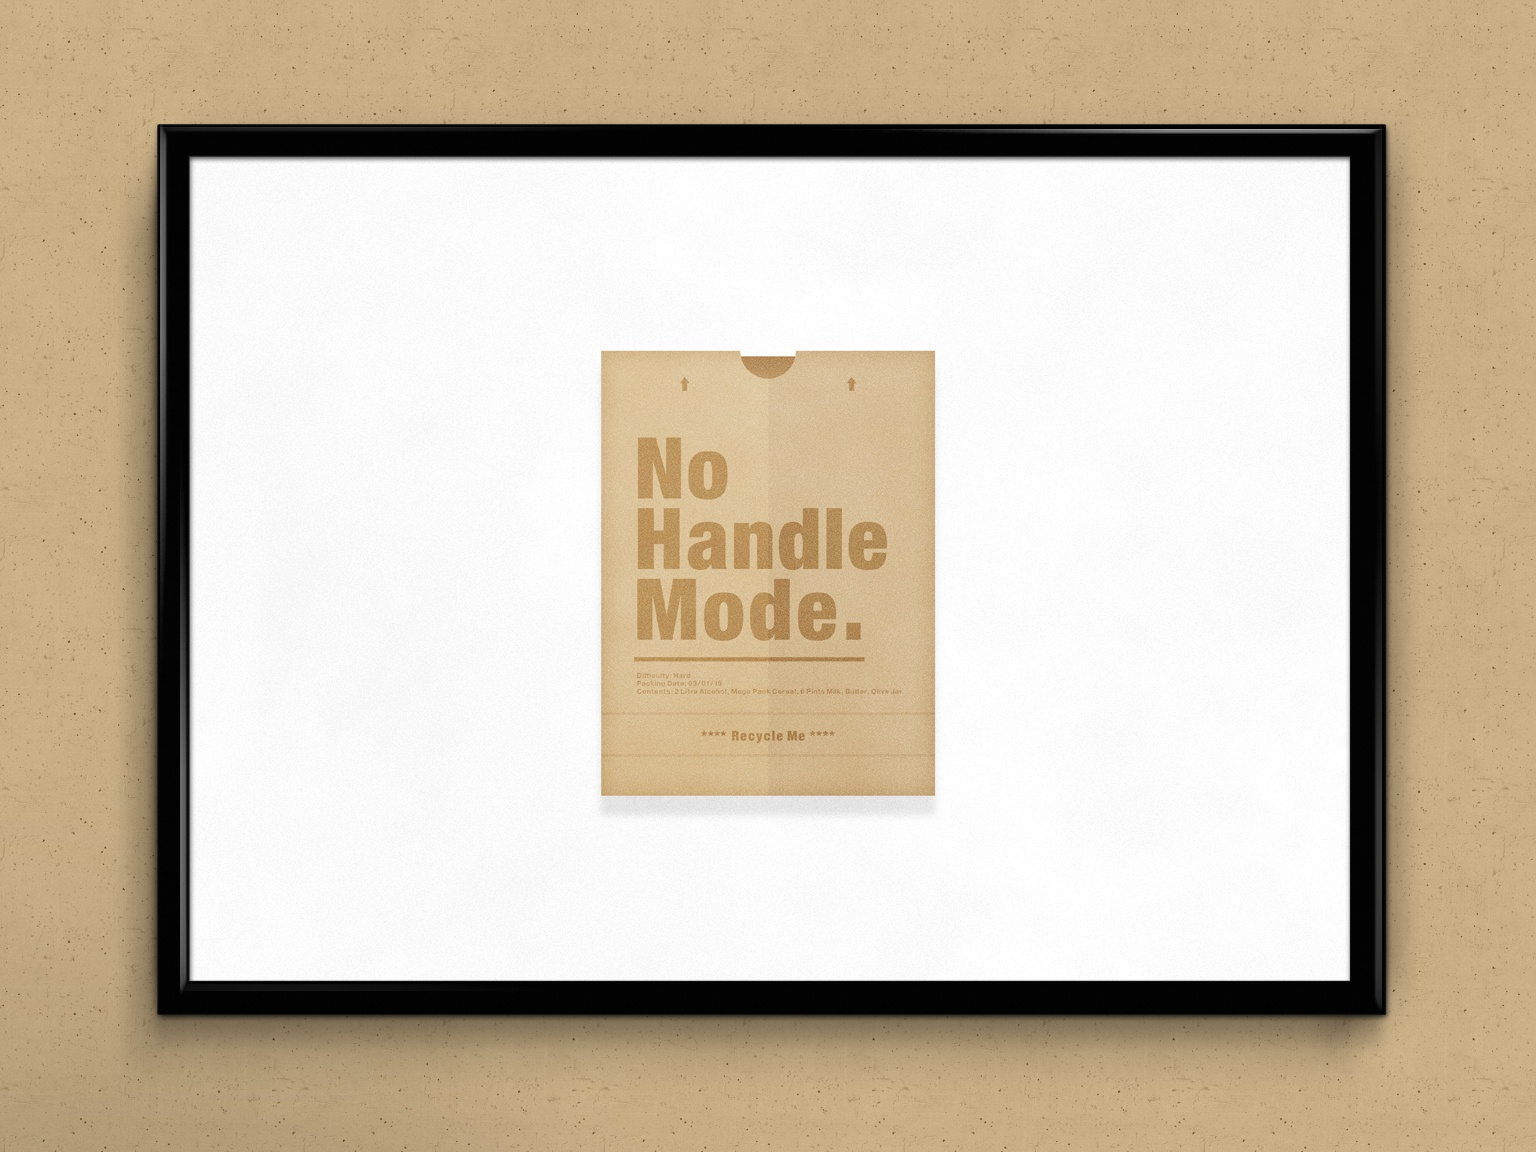 No Handle Mode. | Packaging Design typography text minimal art humour illustration graphics bag shopping minimal simple